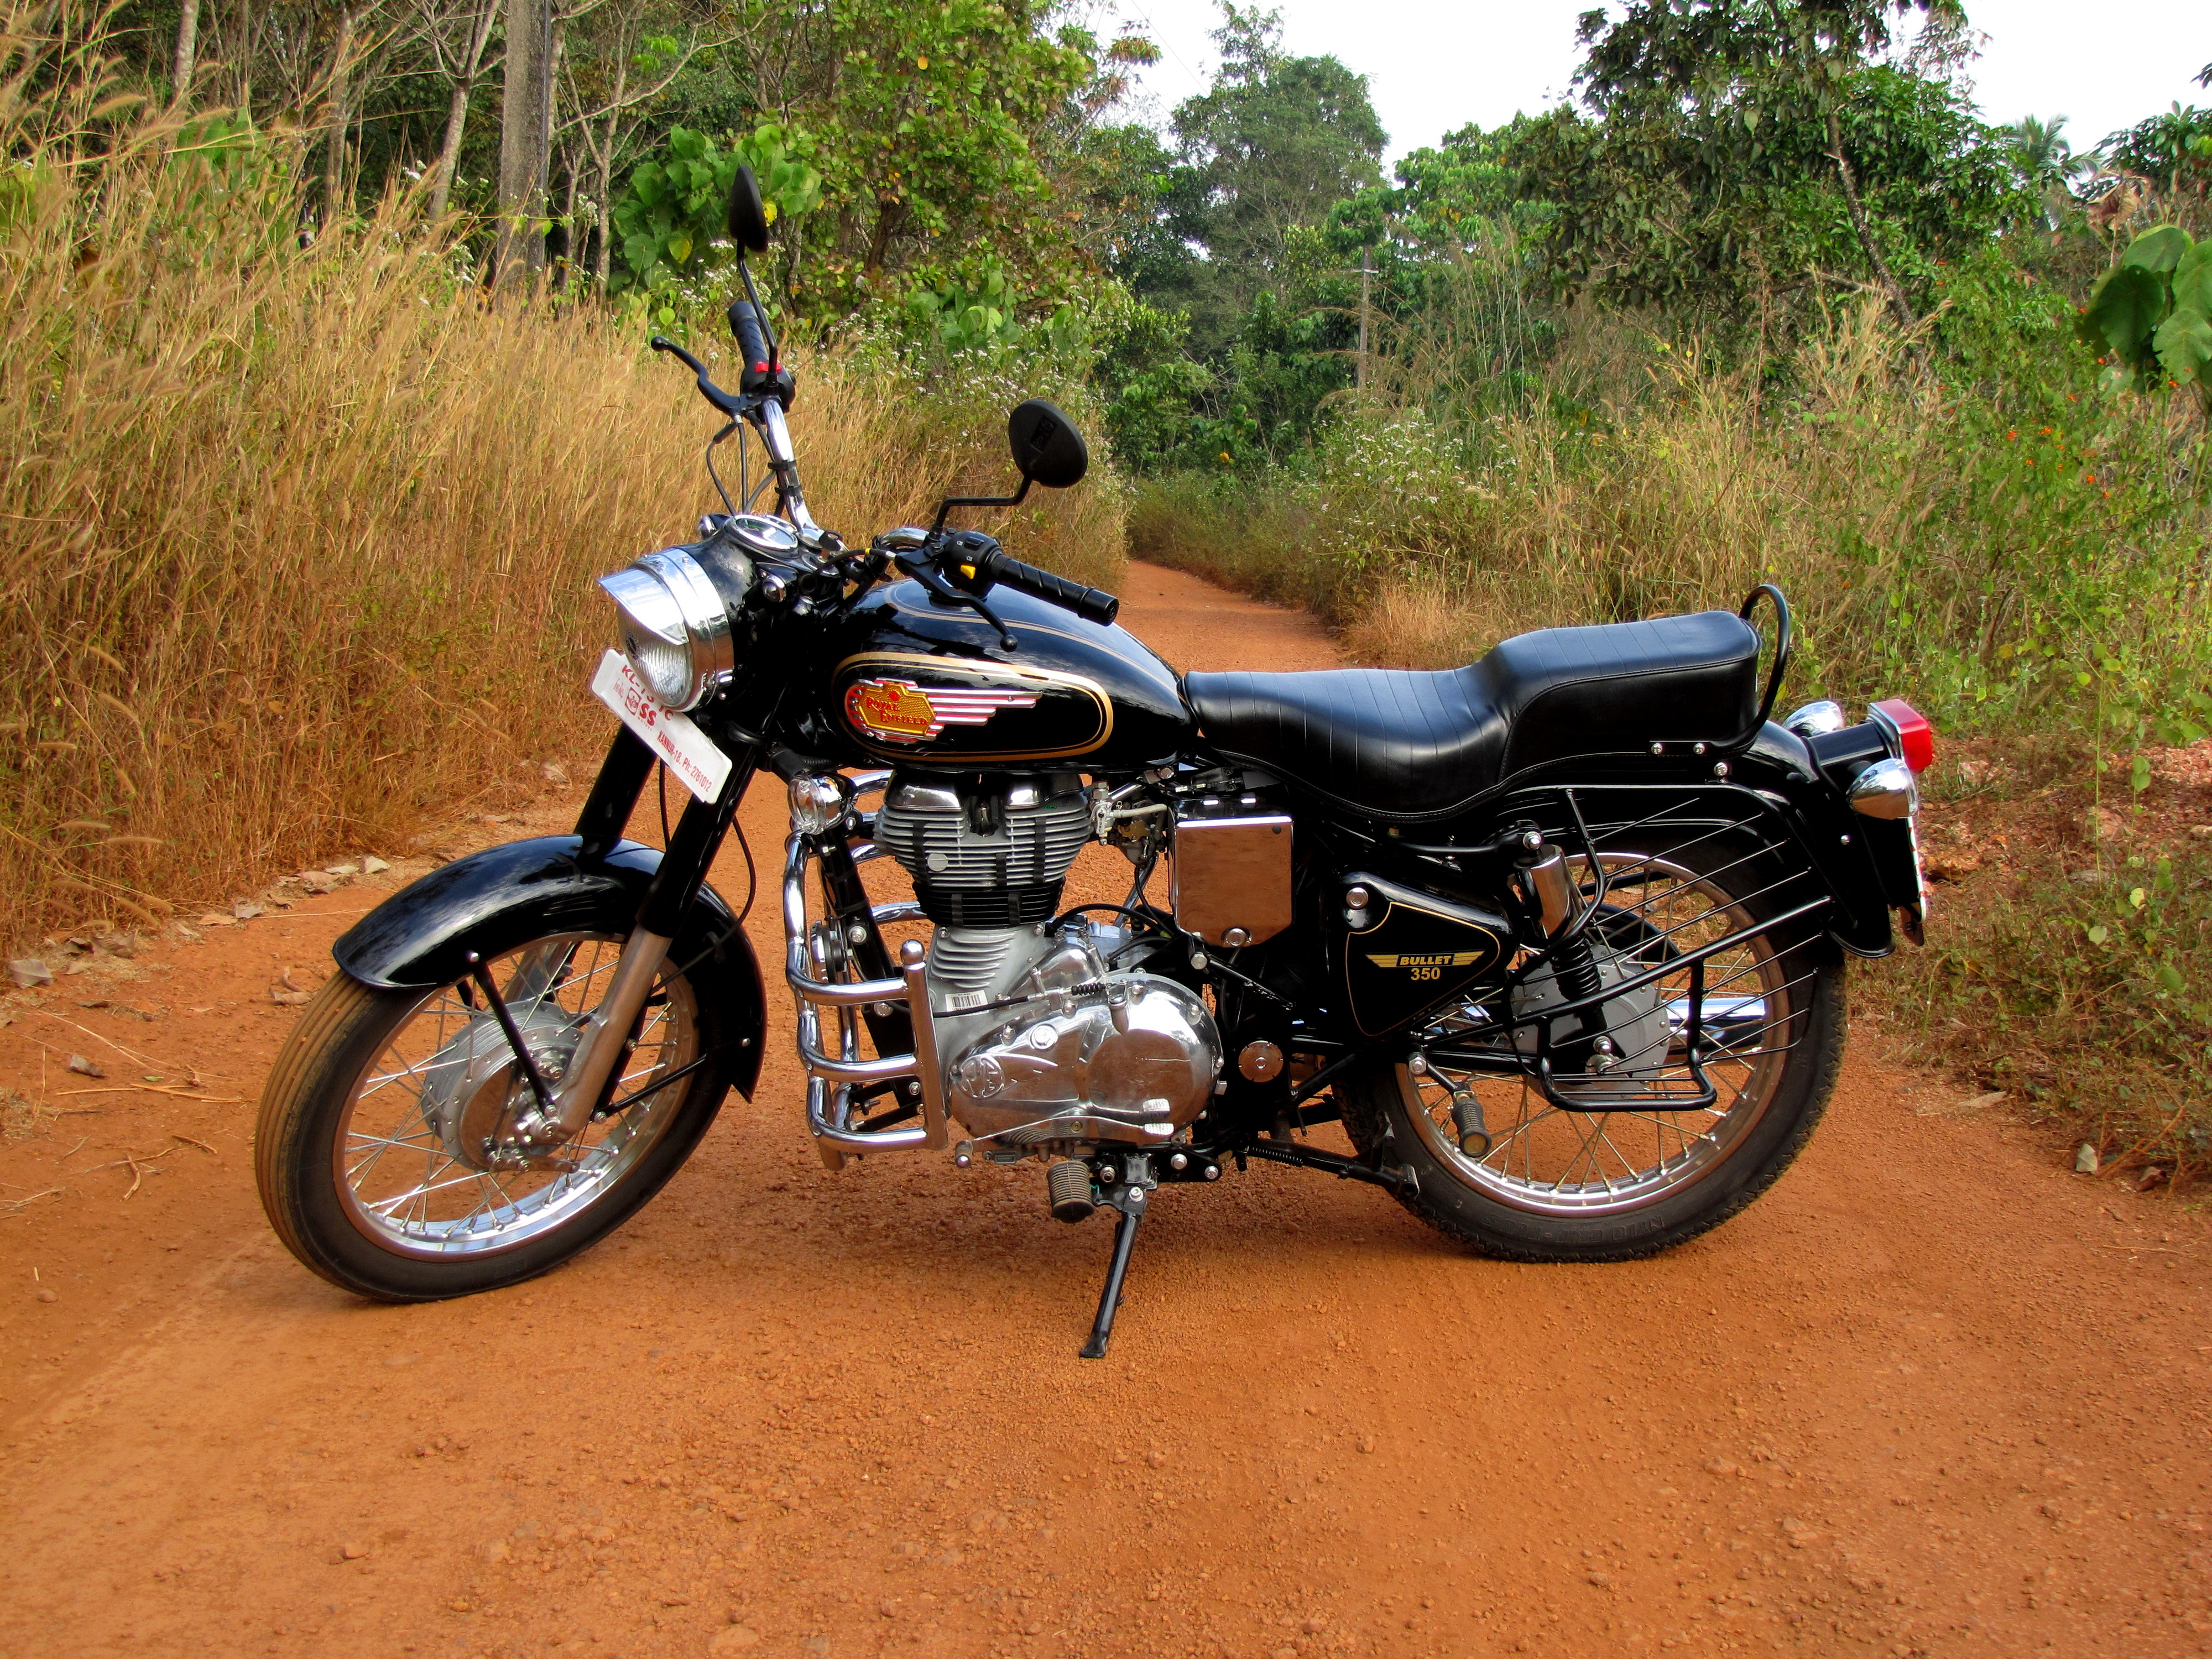 Royal Enfield Bullet 500 Army 1995 images #122809